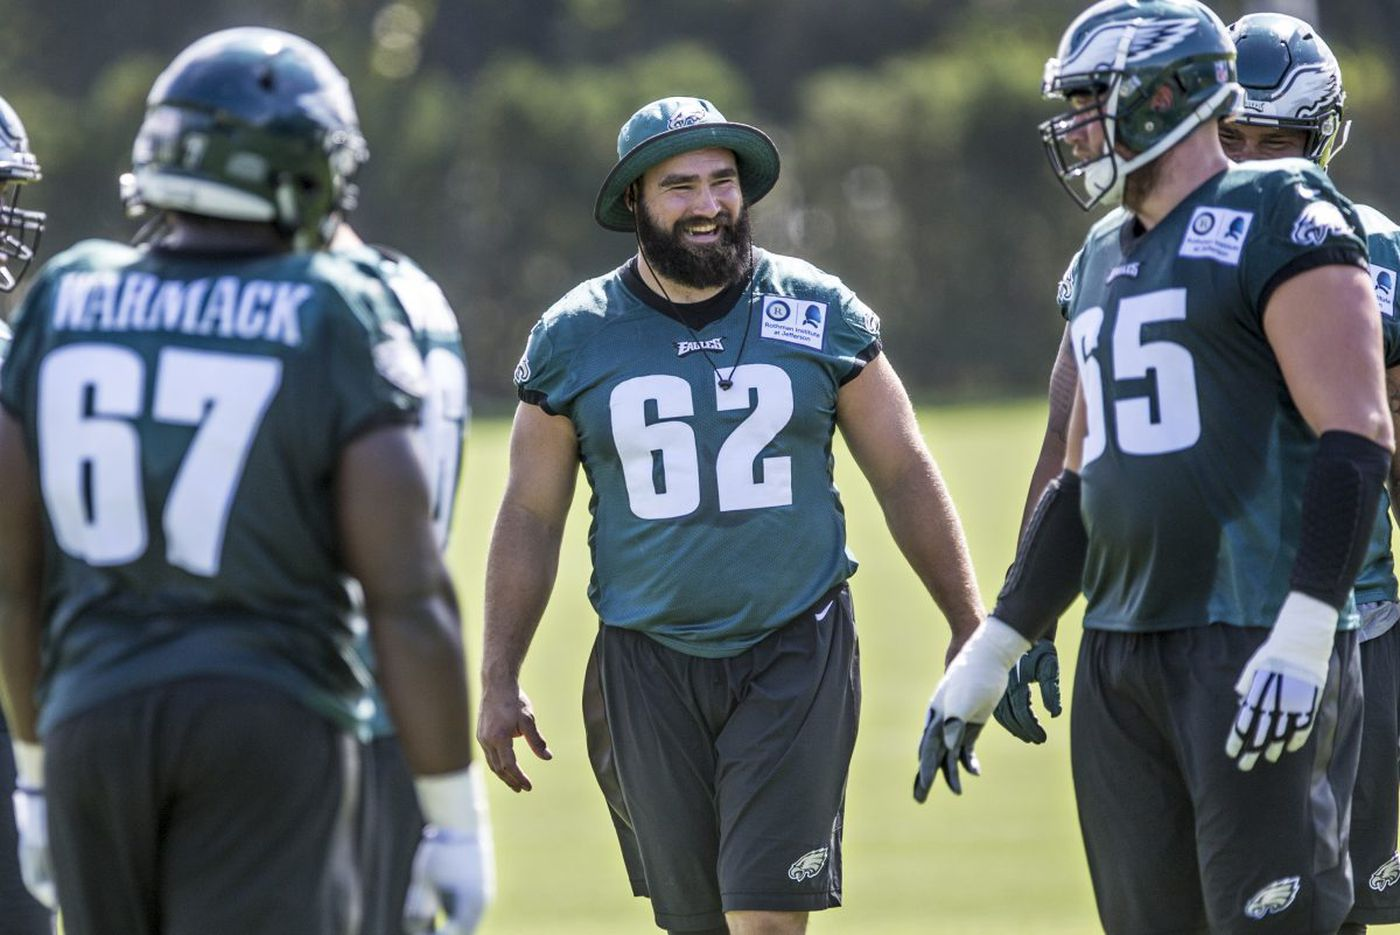 Against Redskins, Eagles' O-line must block out confusion